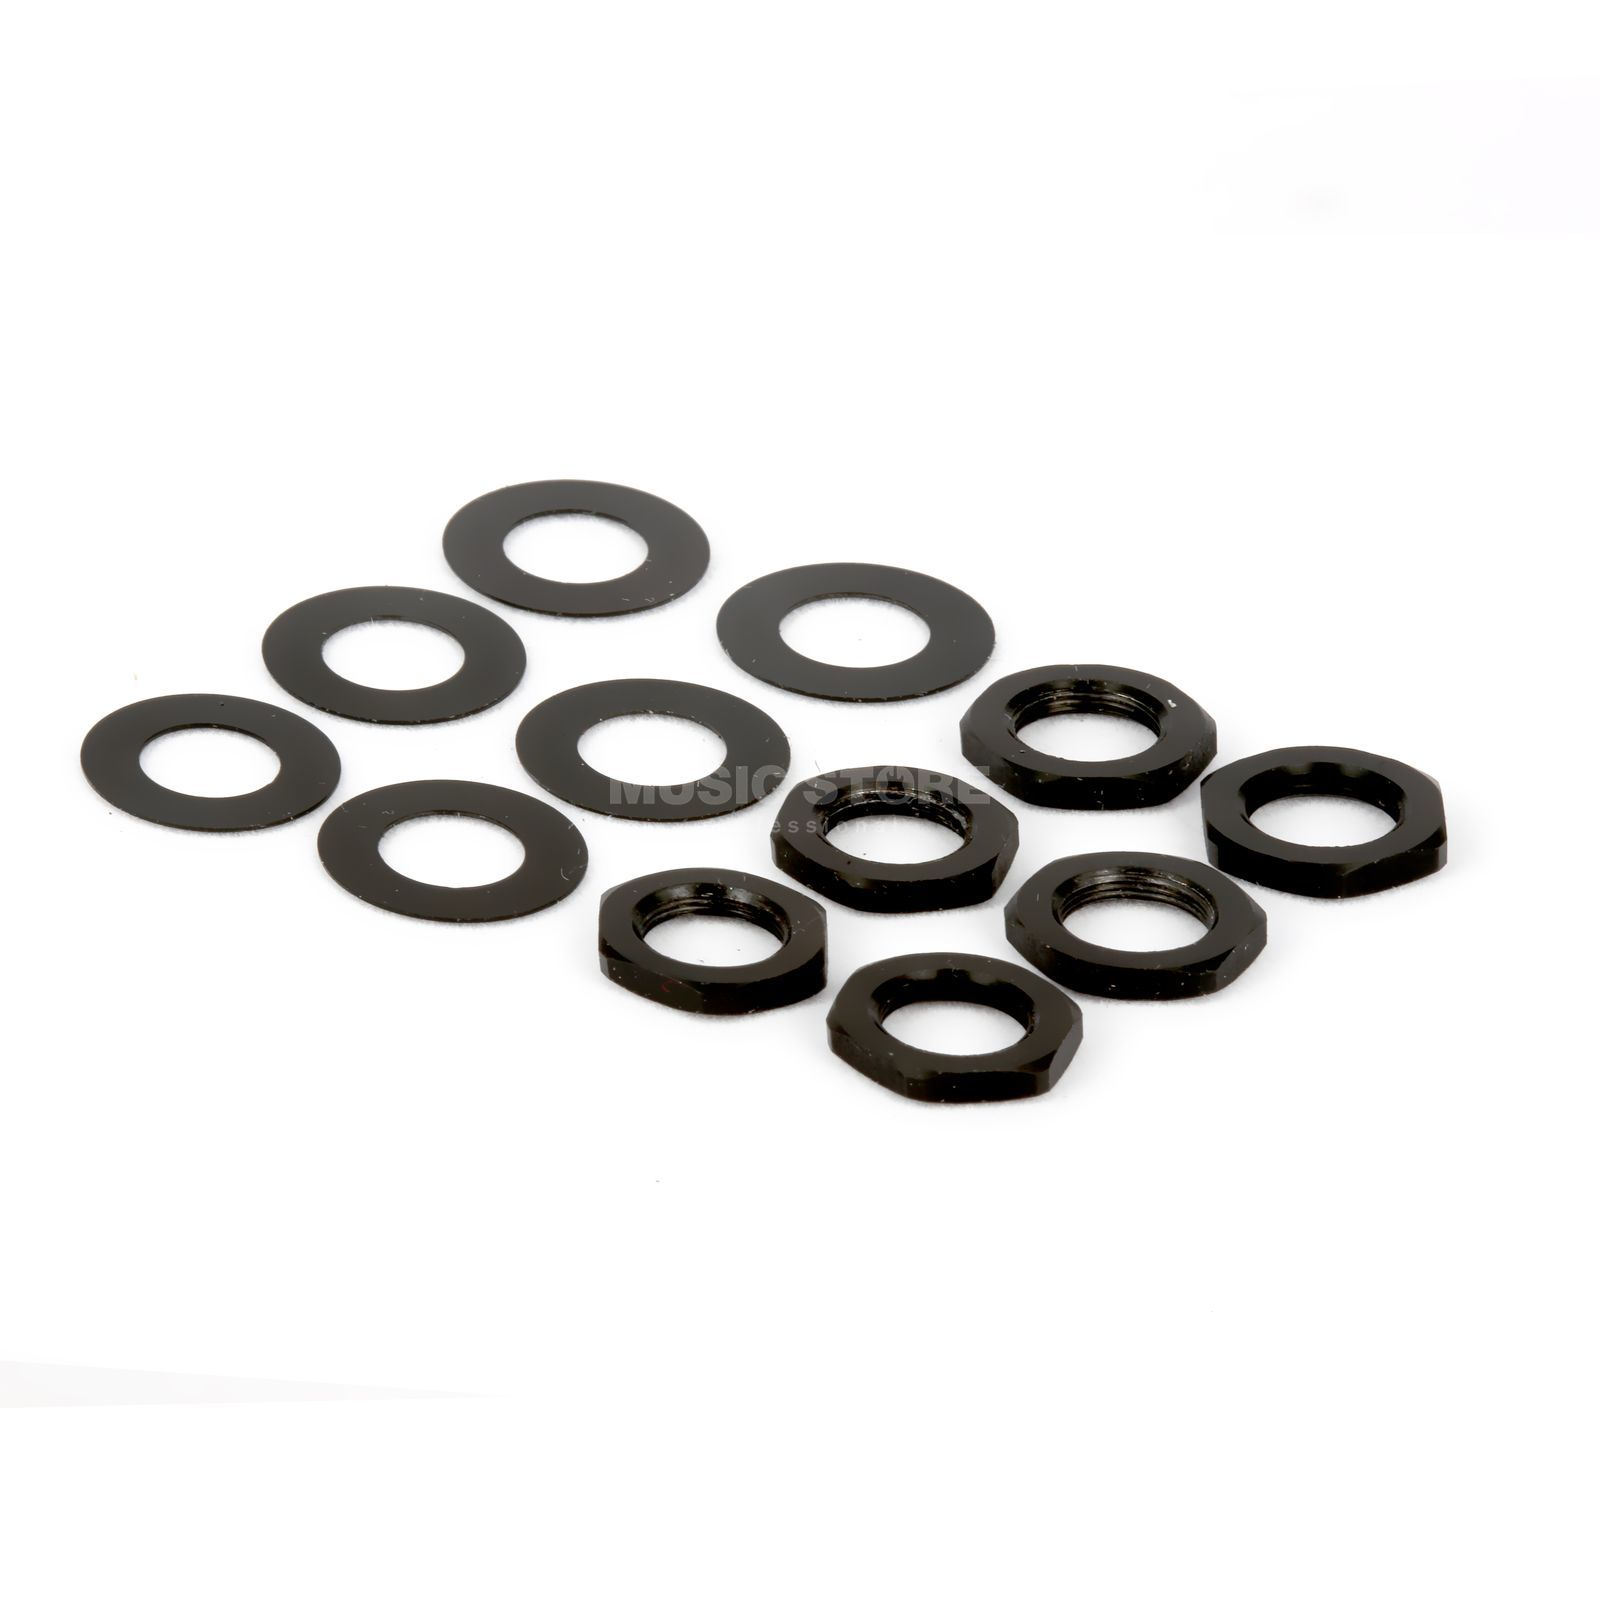 Tronical Hex Nut & Washer Black Produktbillede